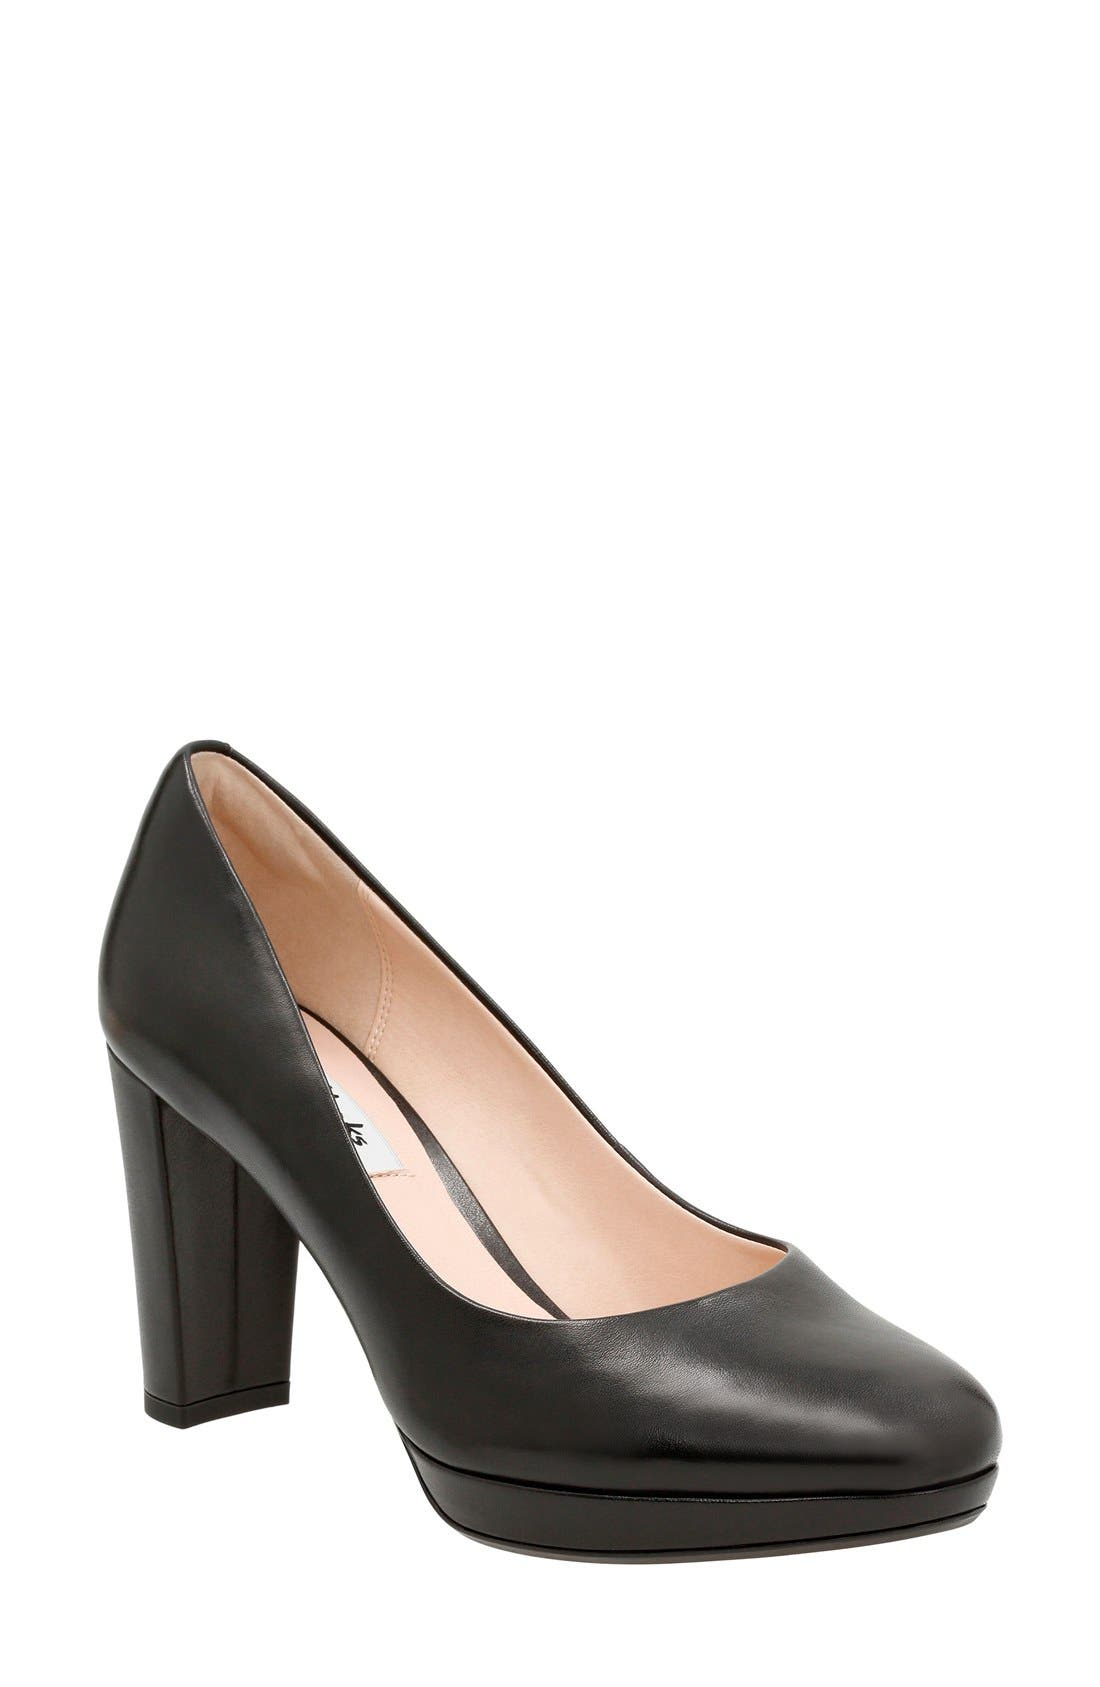 Kendra Sienna Almond Toe Pump,                         Main,                         color, Black Leather